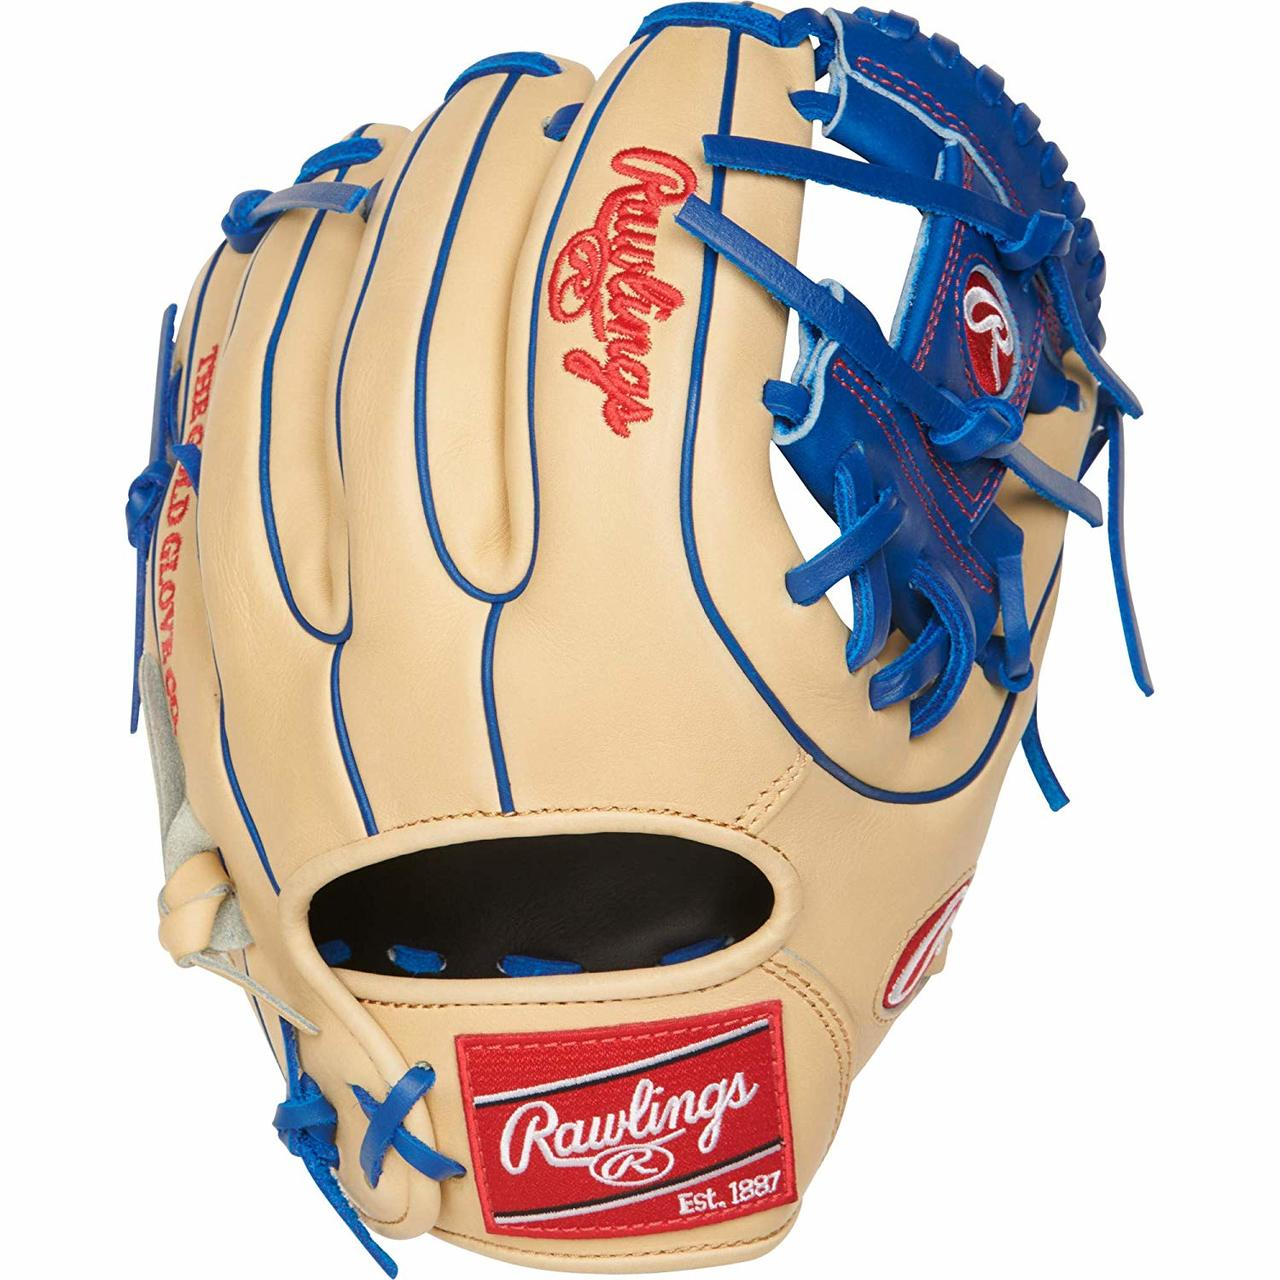 rawlings-heart-the-hide-11-25-inch-pro312-2cr-baseball-glove-right-hand-throw PRO312-2CR-RightHandThrow Rawlings 083321523144 Patterns specifically developed for elite softball players Patented Dual Core breakpoints